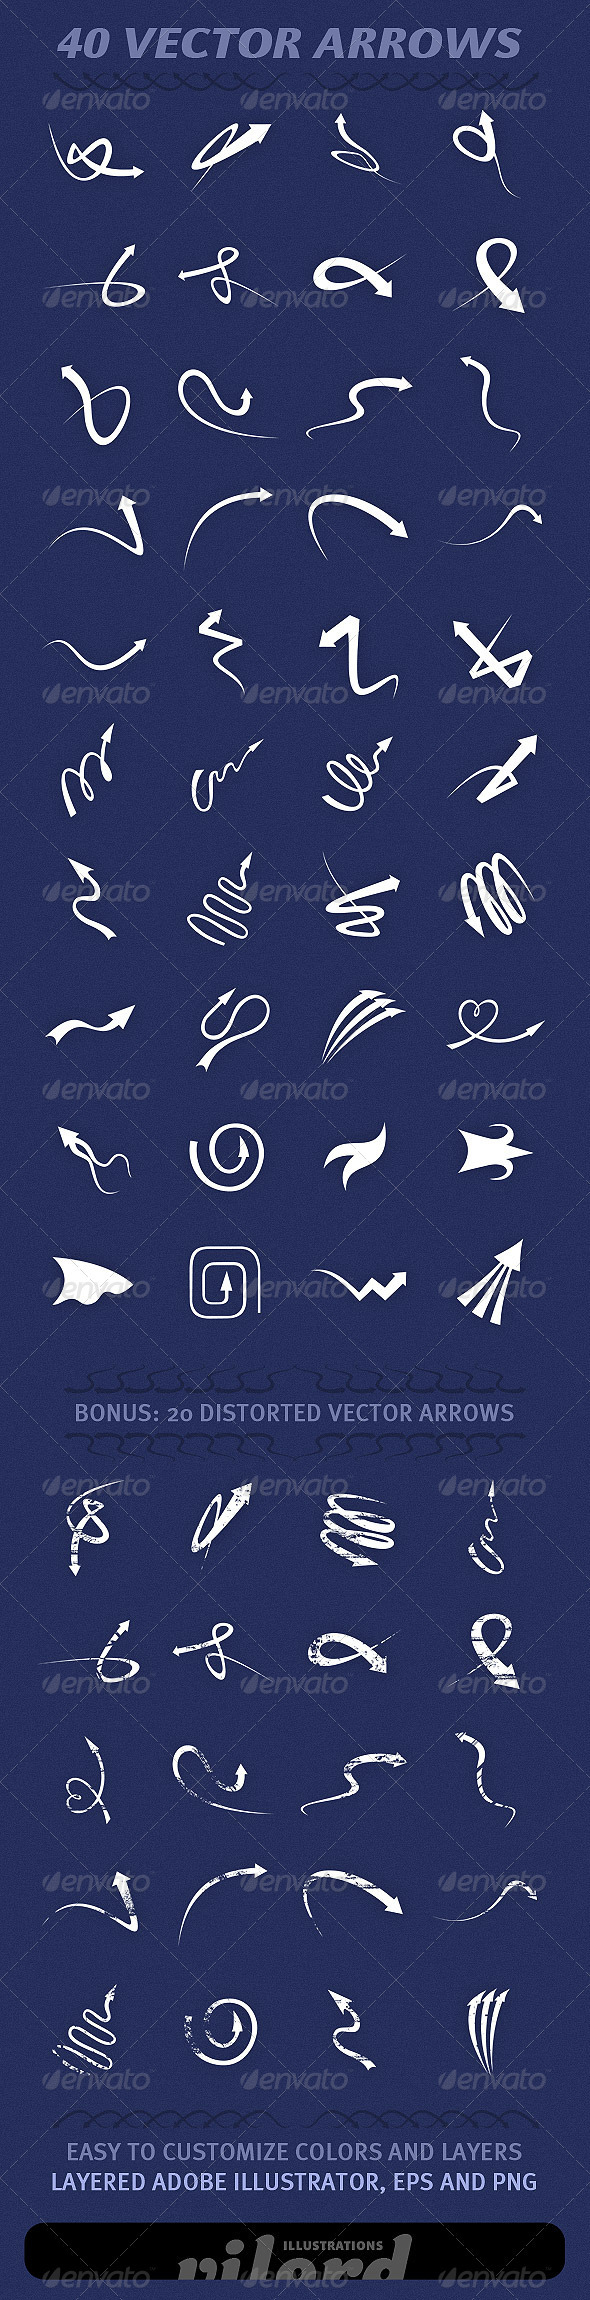 40 Vector Arrows - Flourishes / Swirls Decorative